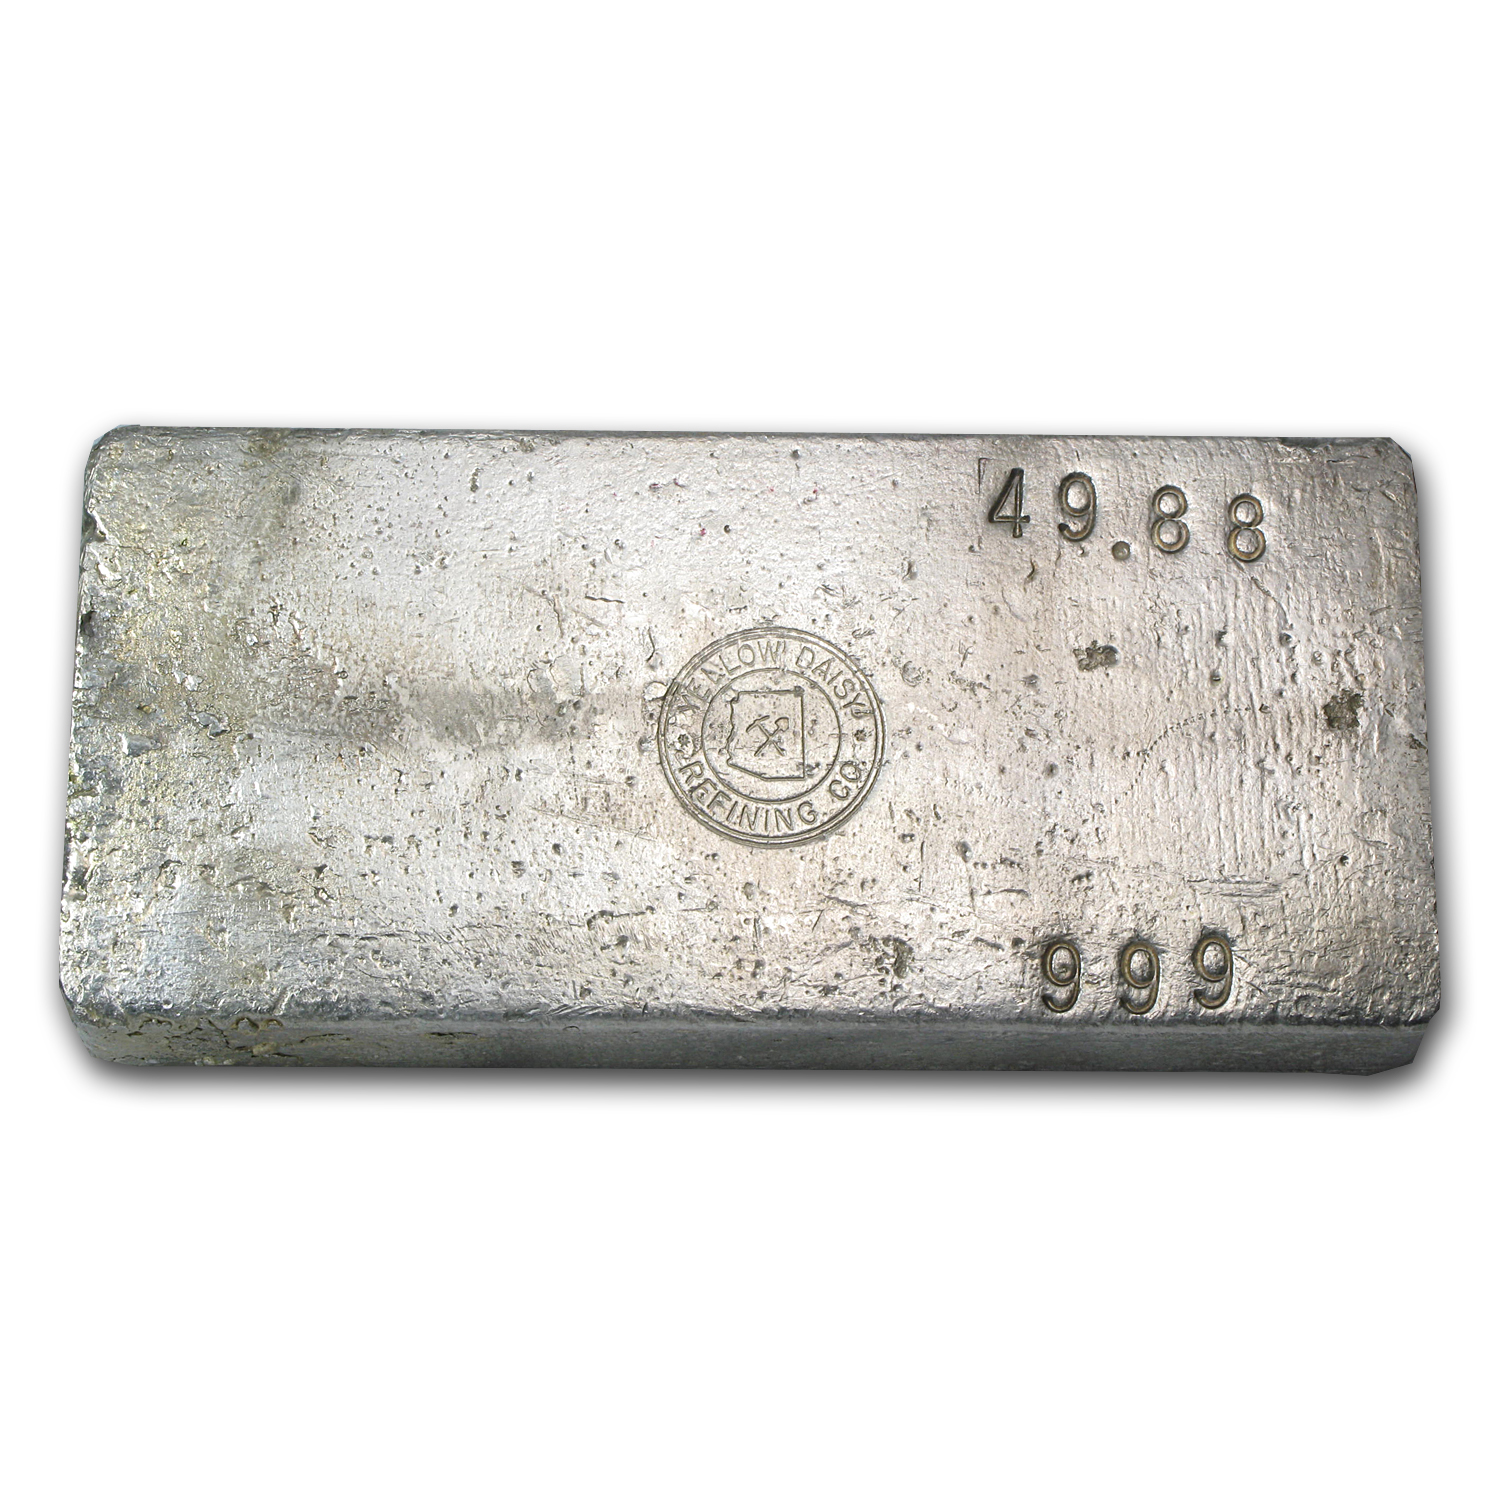 49.88 oz Silver Bar - Yellow Daisy Refining Co.